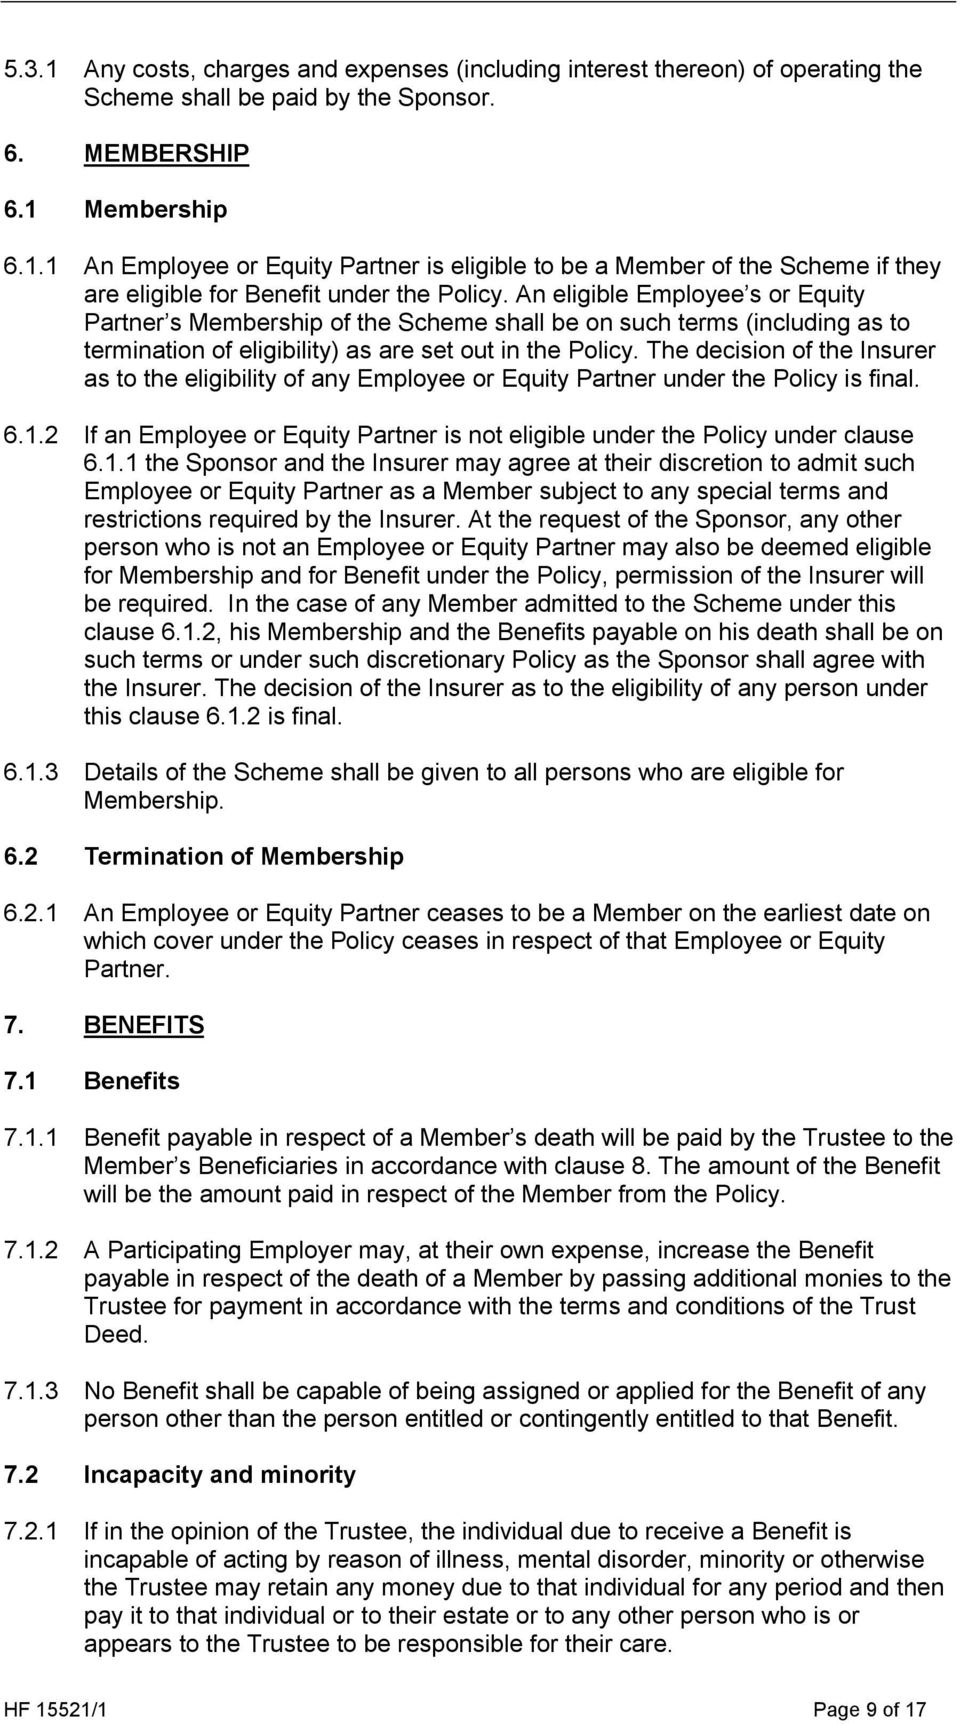 The decision of the Insurer as to the eligibility of any Employee or Equity Partner under the Policy is final. 6.1.